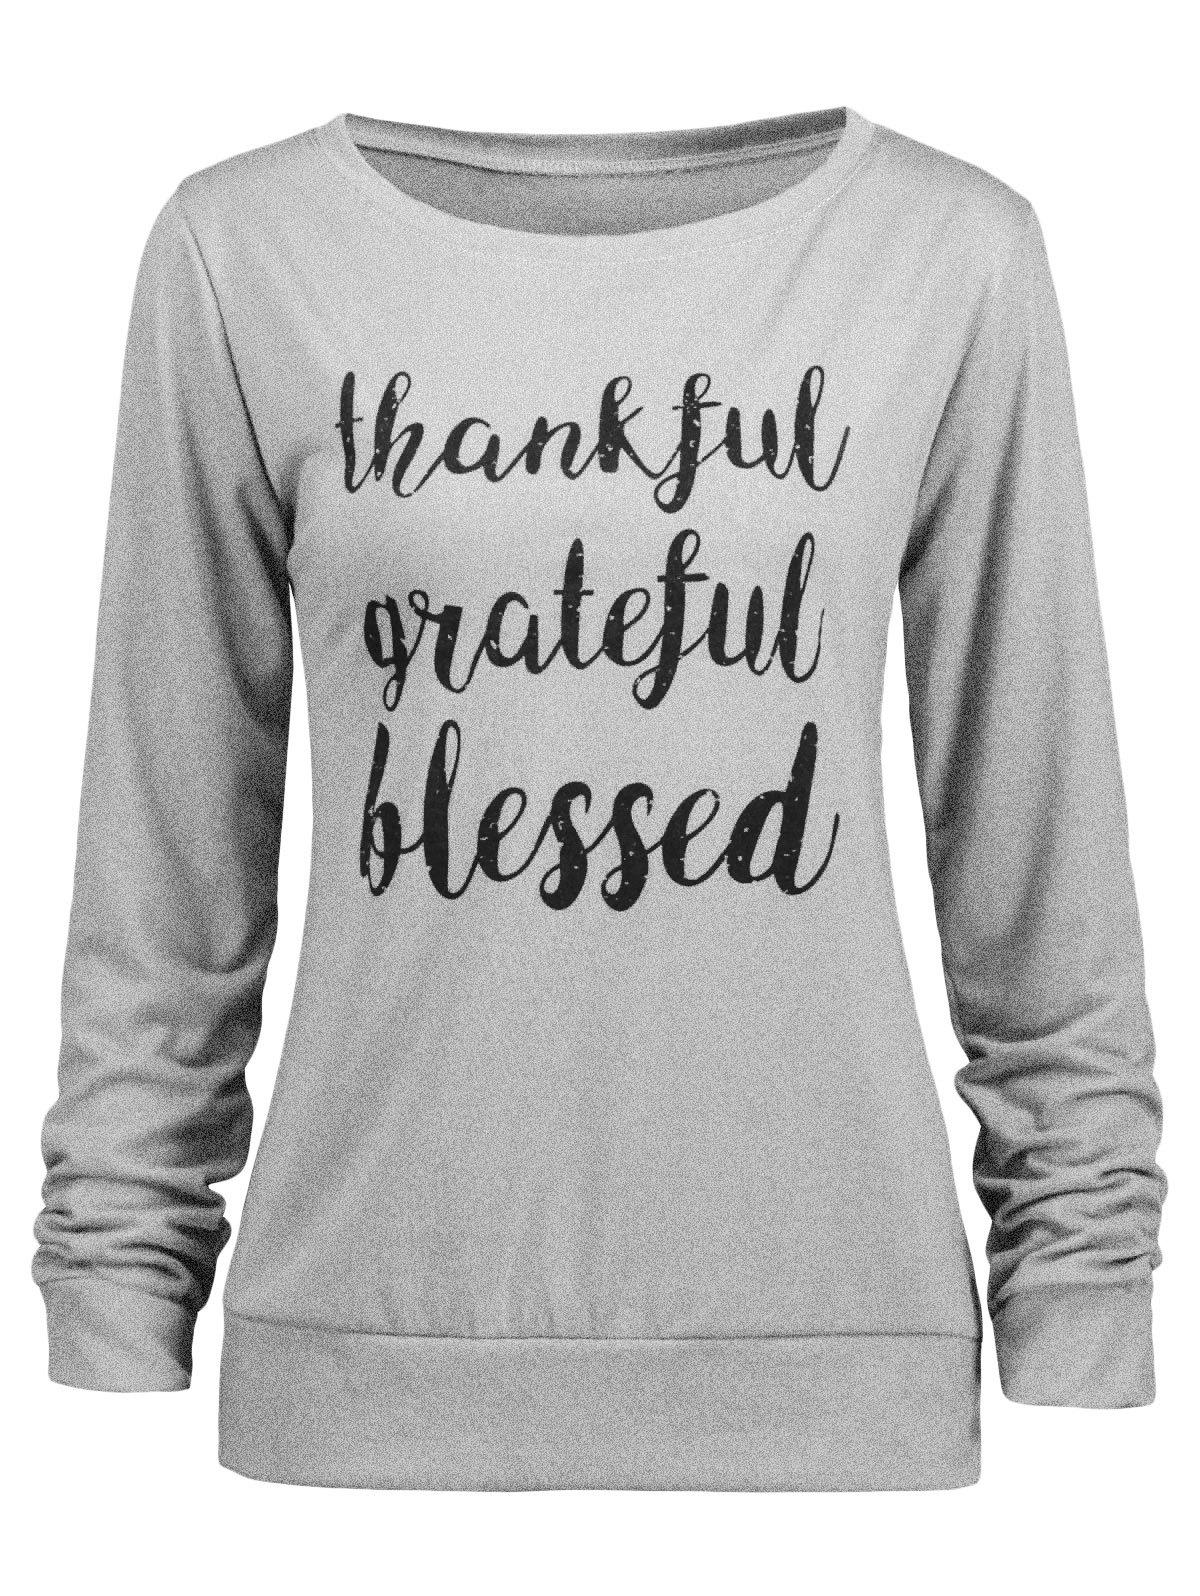 Affordable Thanksgiving Blessed Thankful Sweatshirt